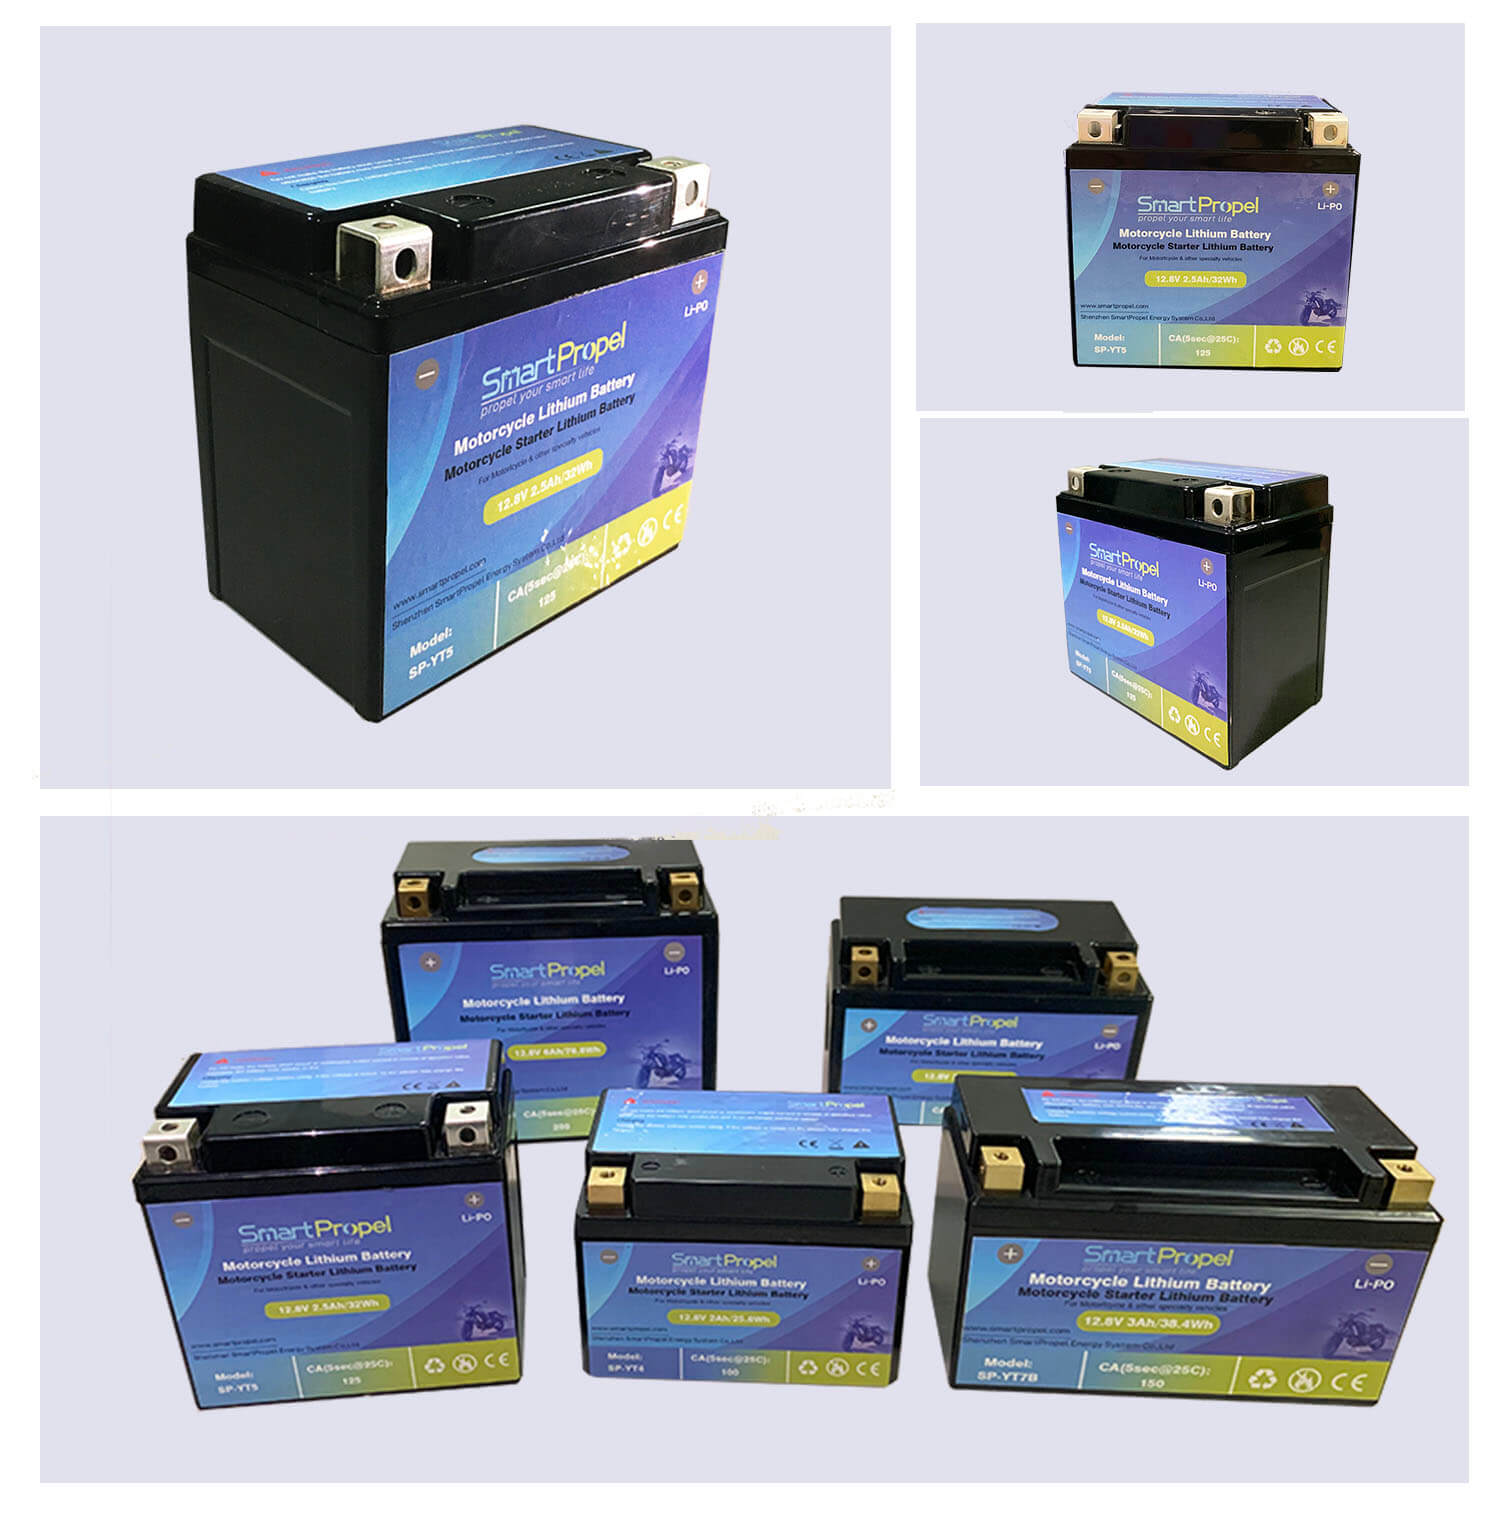 YT5 motorcycle lithium battery